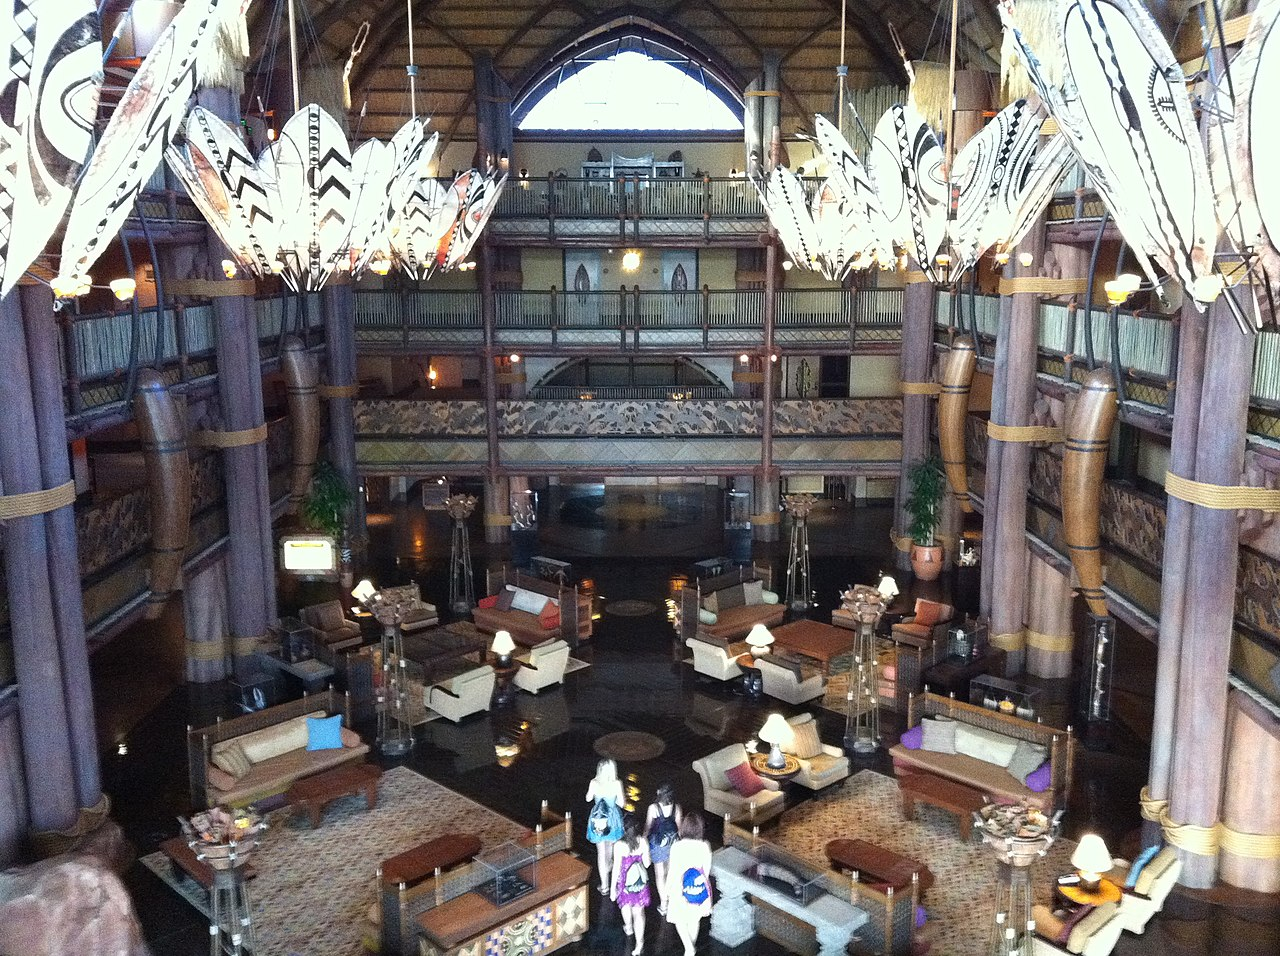 File:Lobby Of Jambo House, Disney's Animal Kingdom Lodge